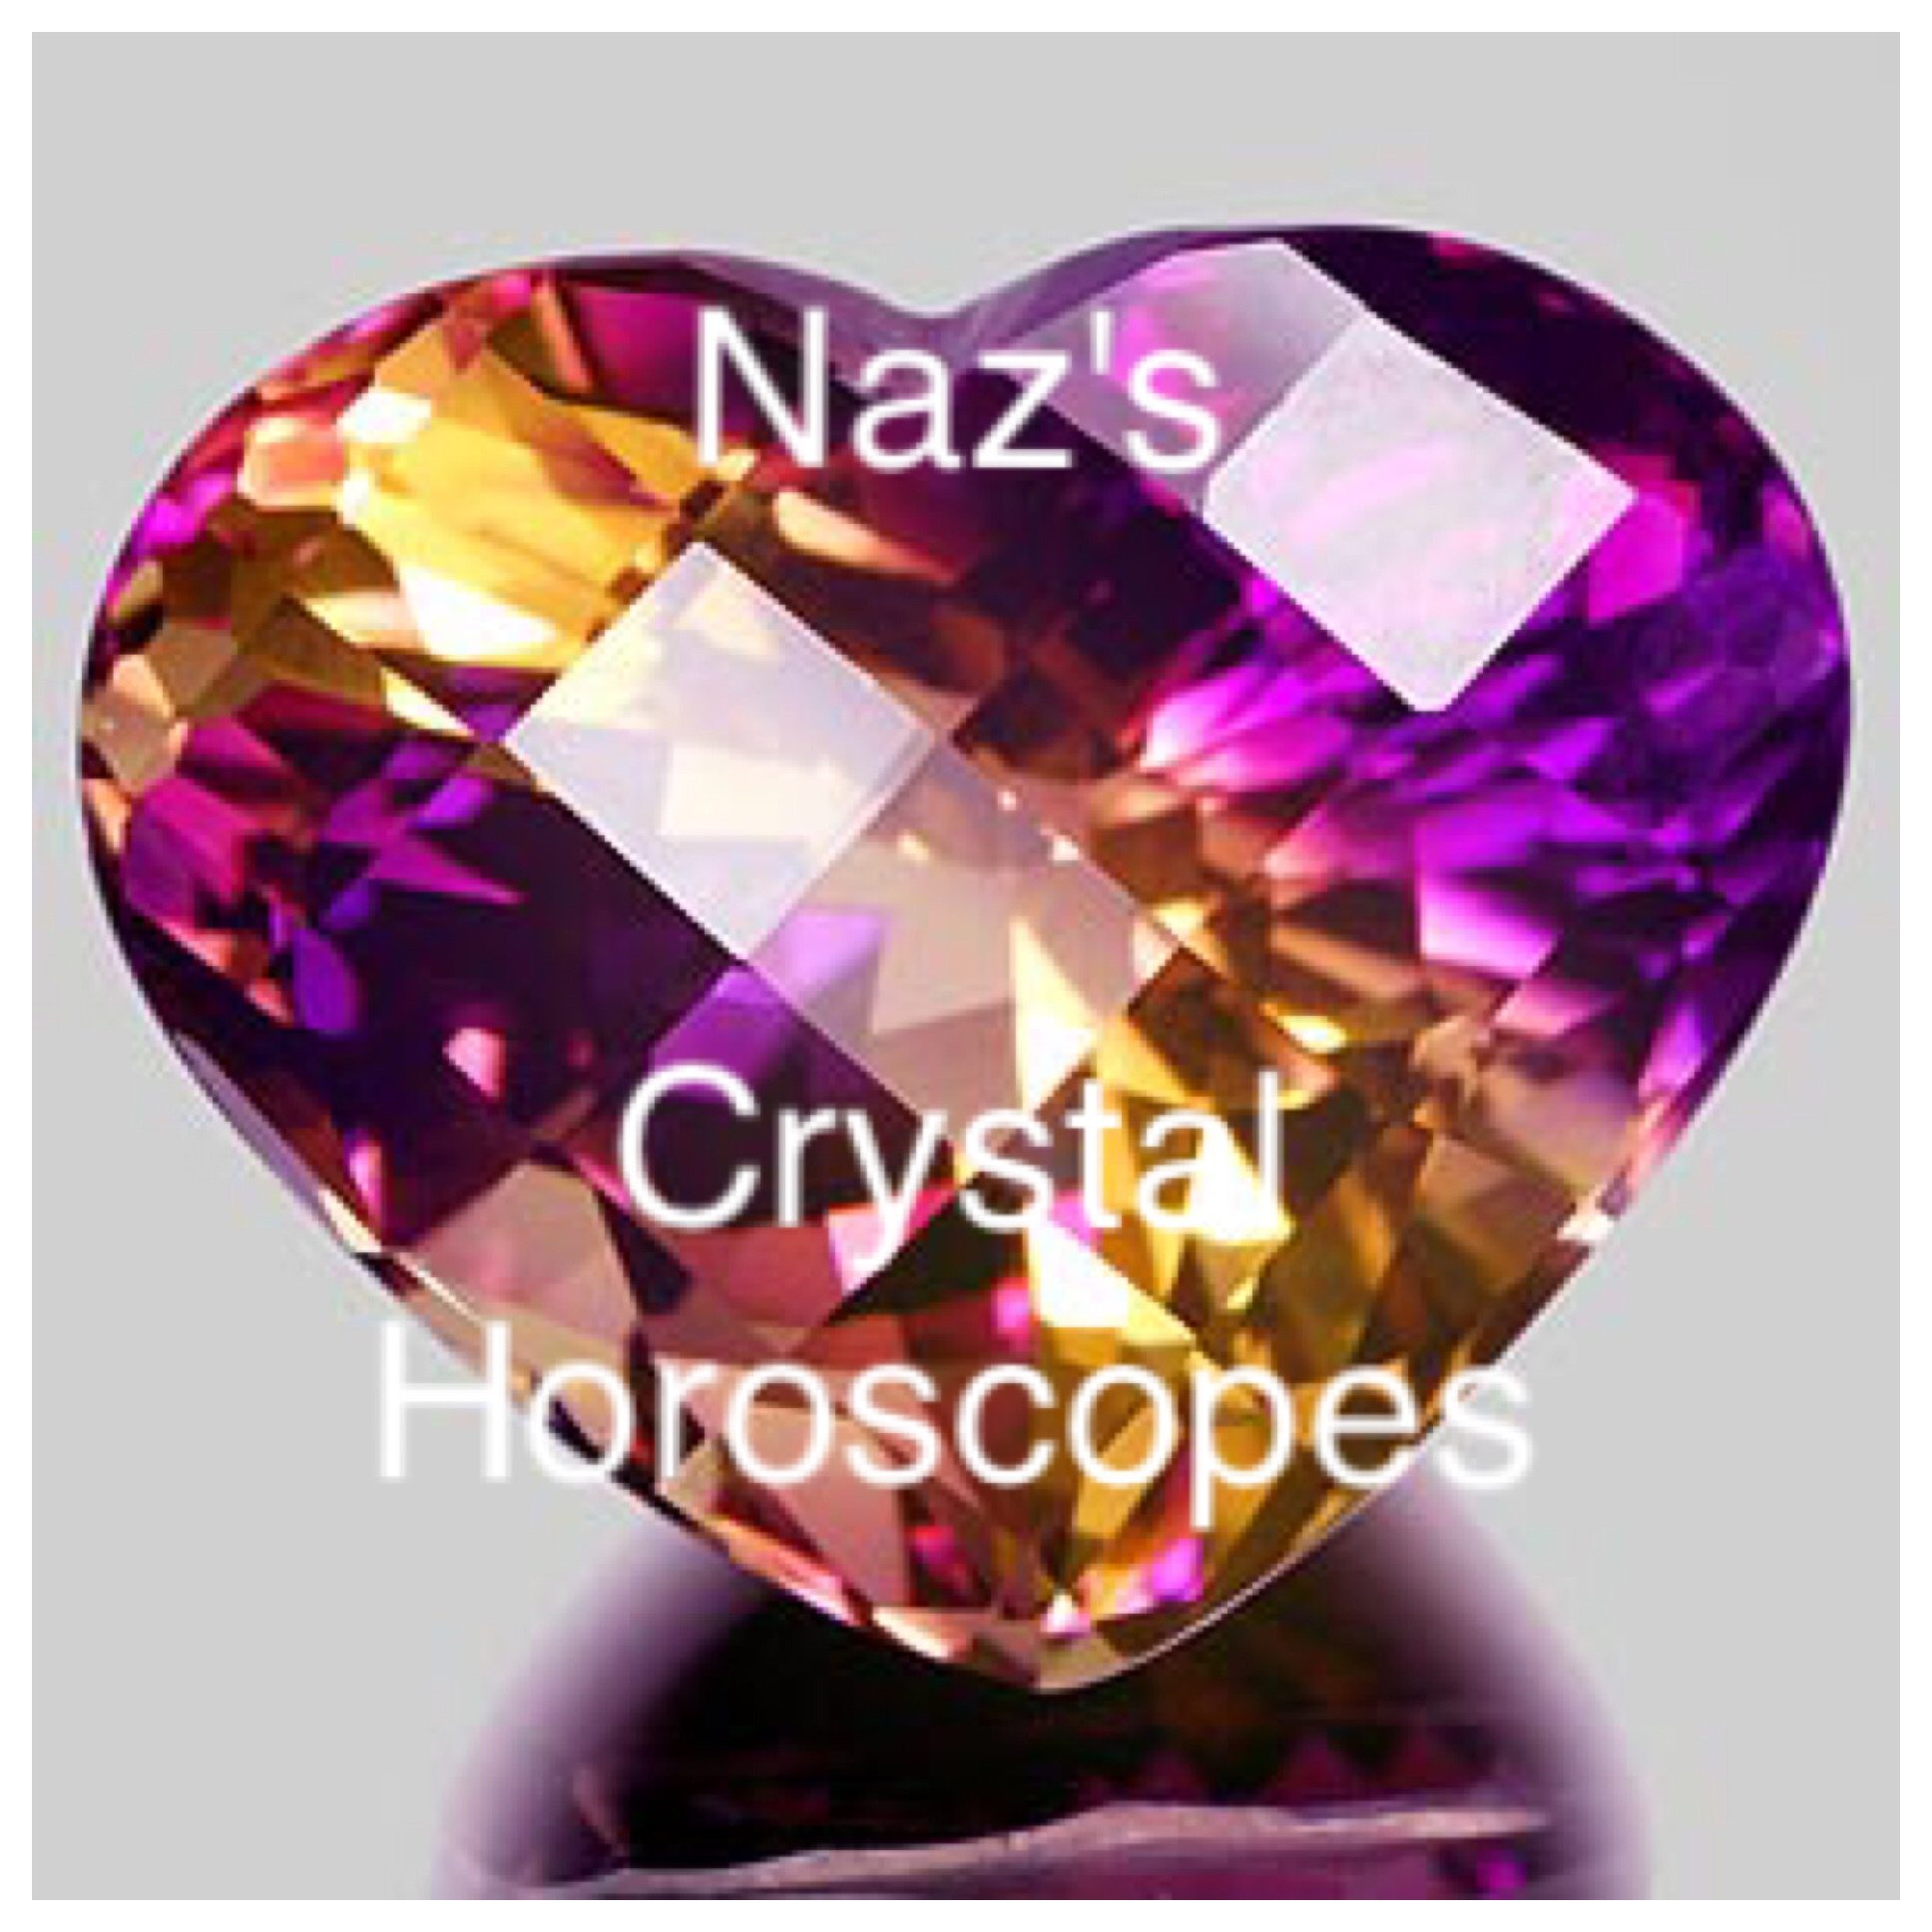 Naz's Crystal Horoscopes 20th - 26th August 2017